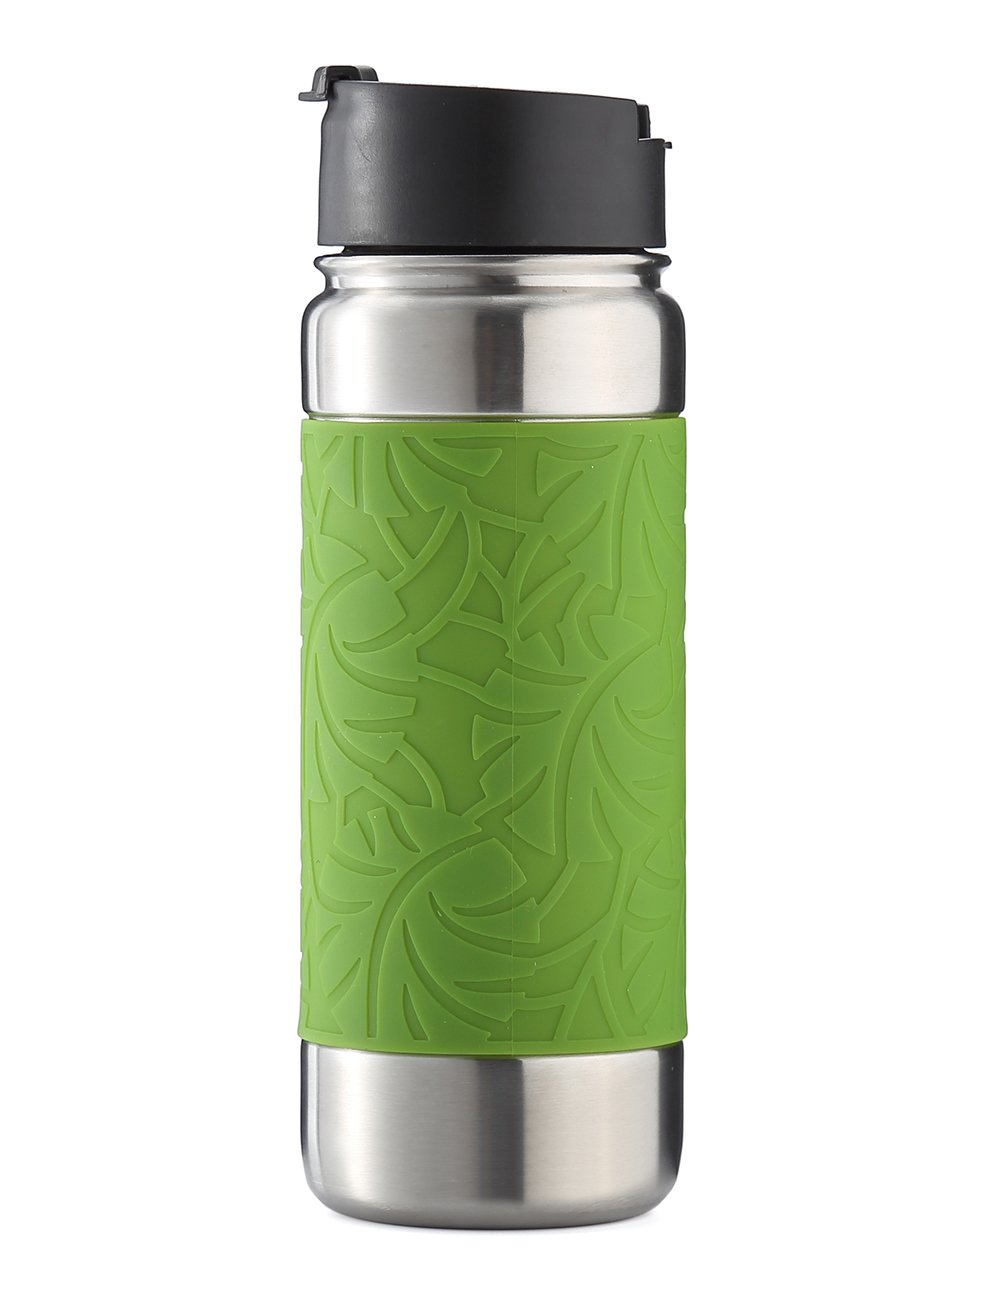 bottlebottle Vacuum Insulated Stainless Steel Water Bottle, 18oz Leak Proof Coffee Travel Mug Thermo Flask with Silicone Sleeve, Wide Mouth with BPA Free Flip Top Lid, Greenery